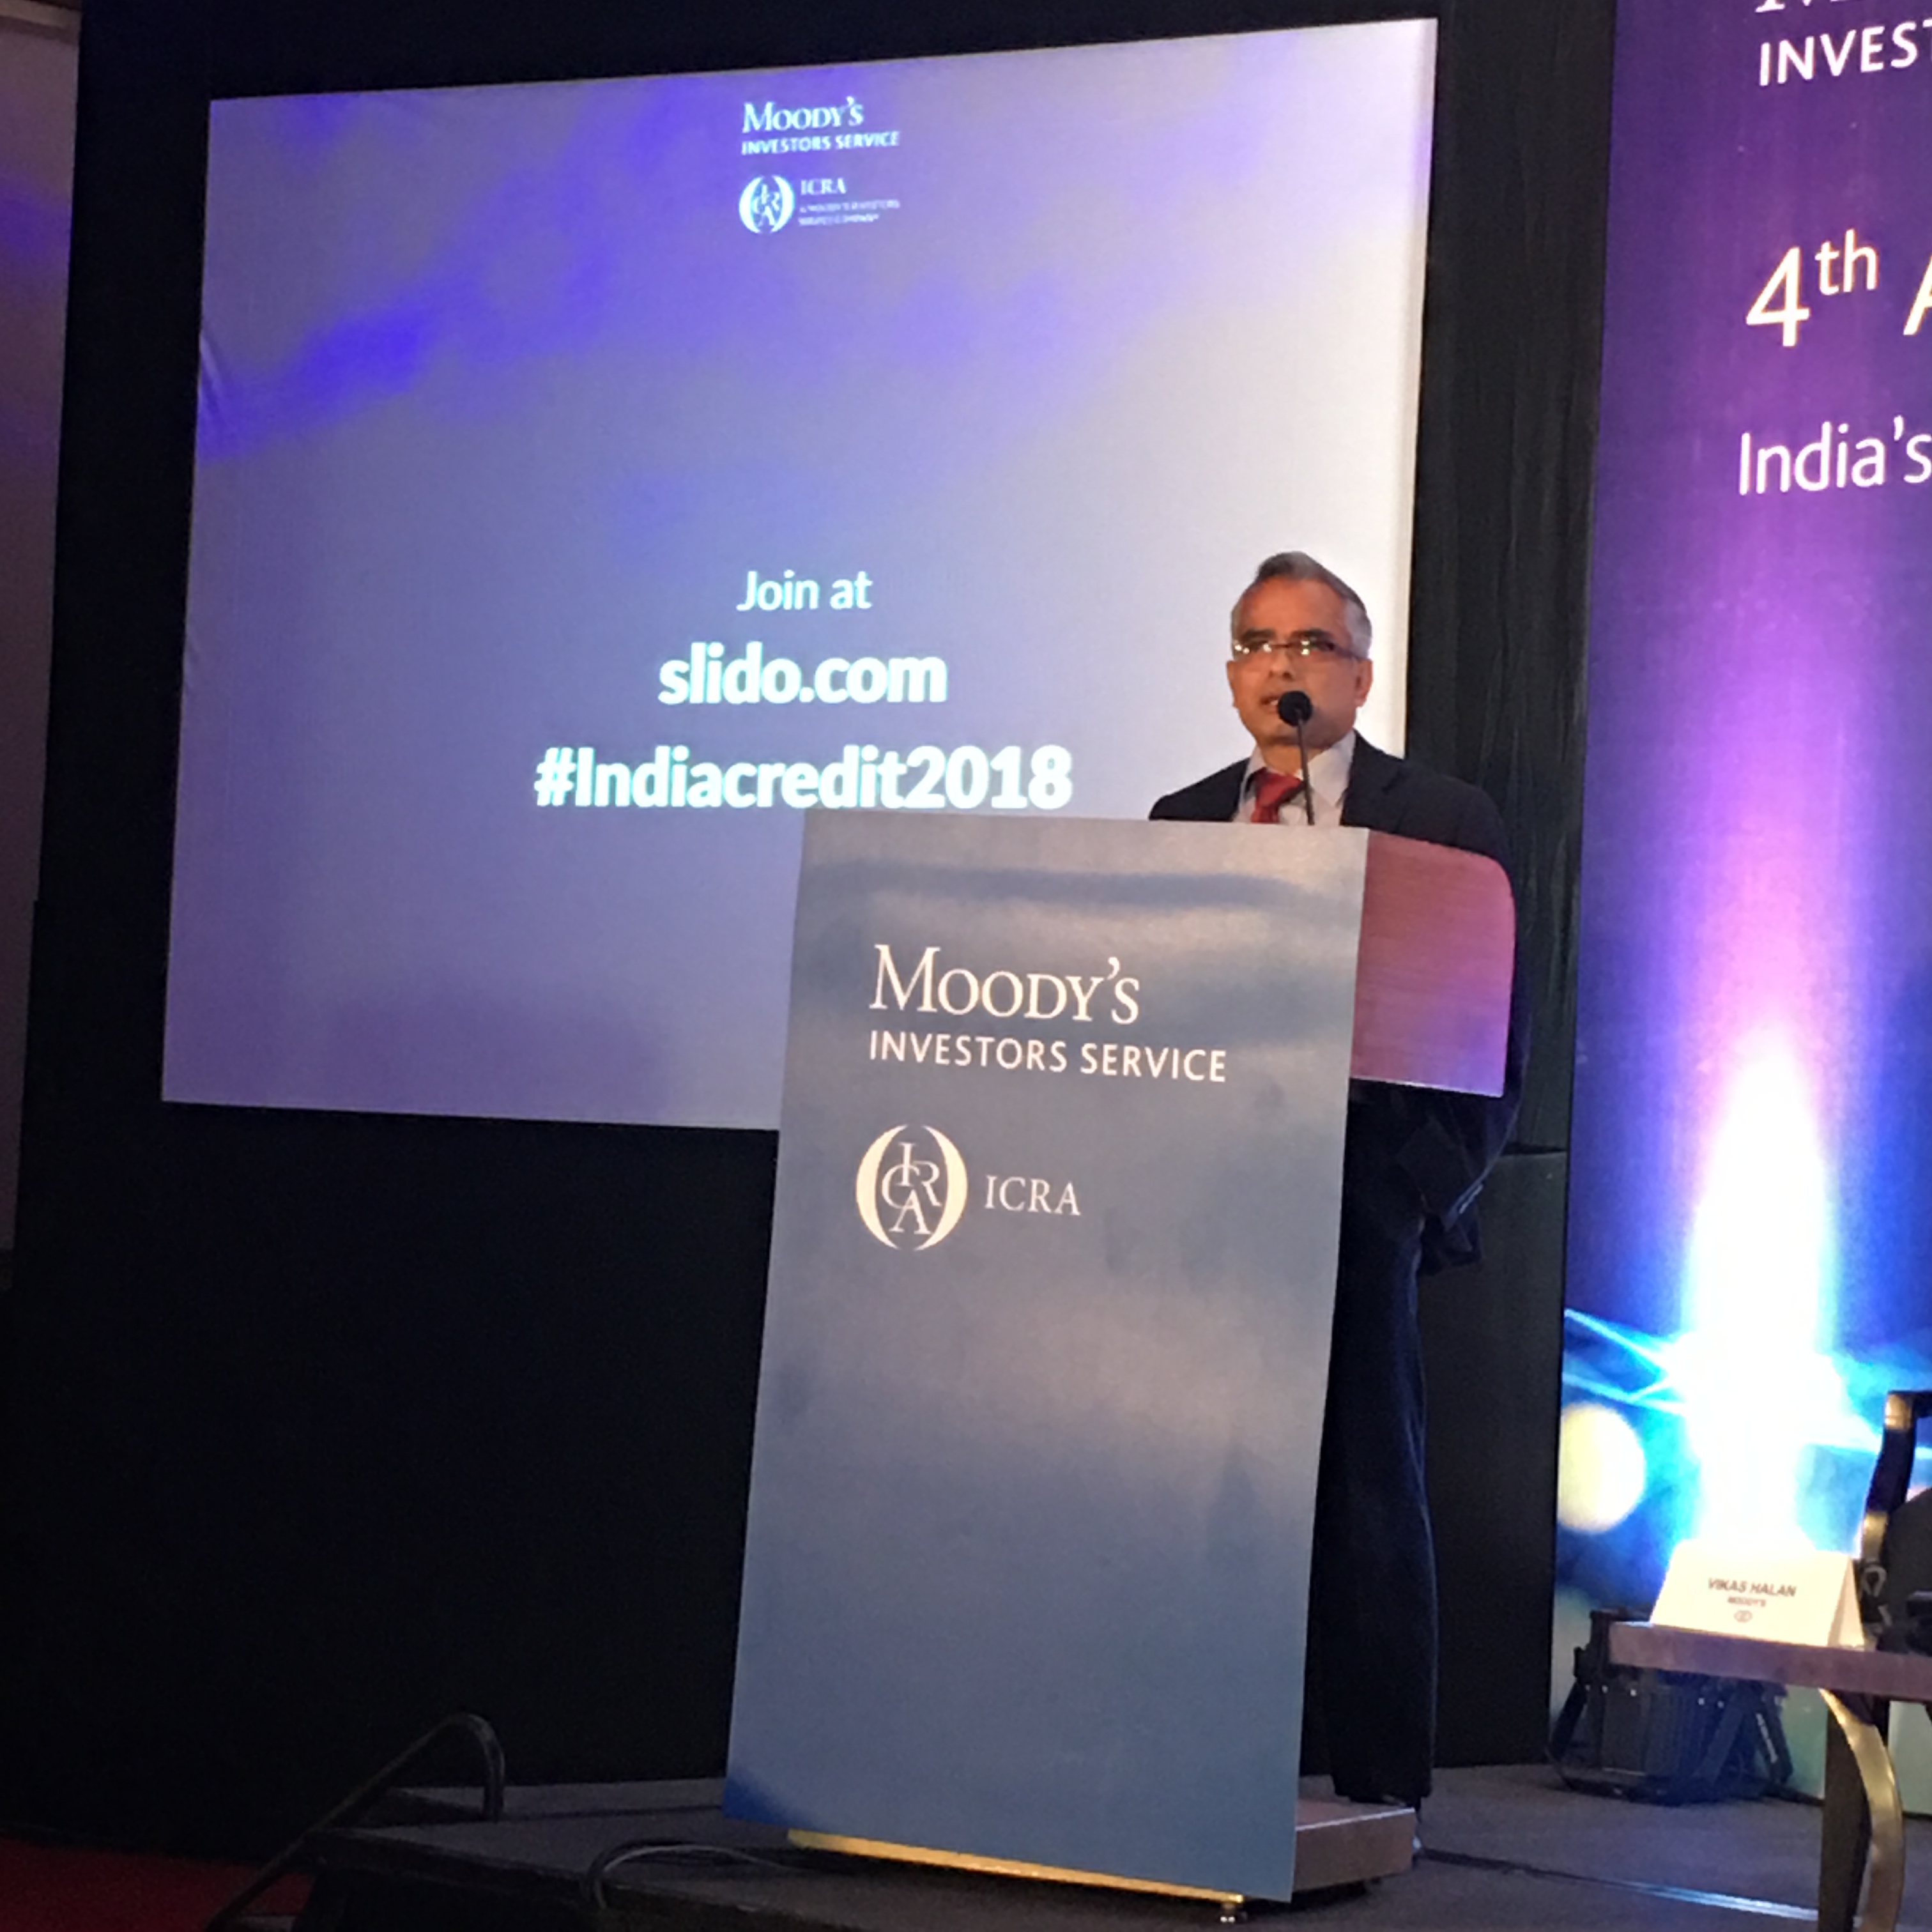 Subrata Ray, Senior Group Vice President, ICRA Ltd presenting on tracking credit trends for Indian non-financial corporates at Moody's ICRA 4th Annual India Credit Conference in Mumbai.